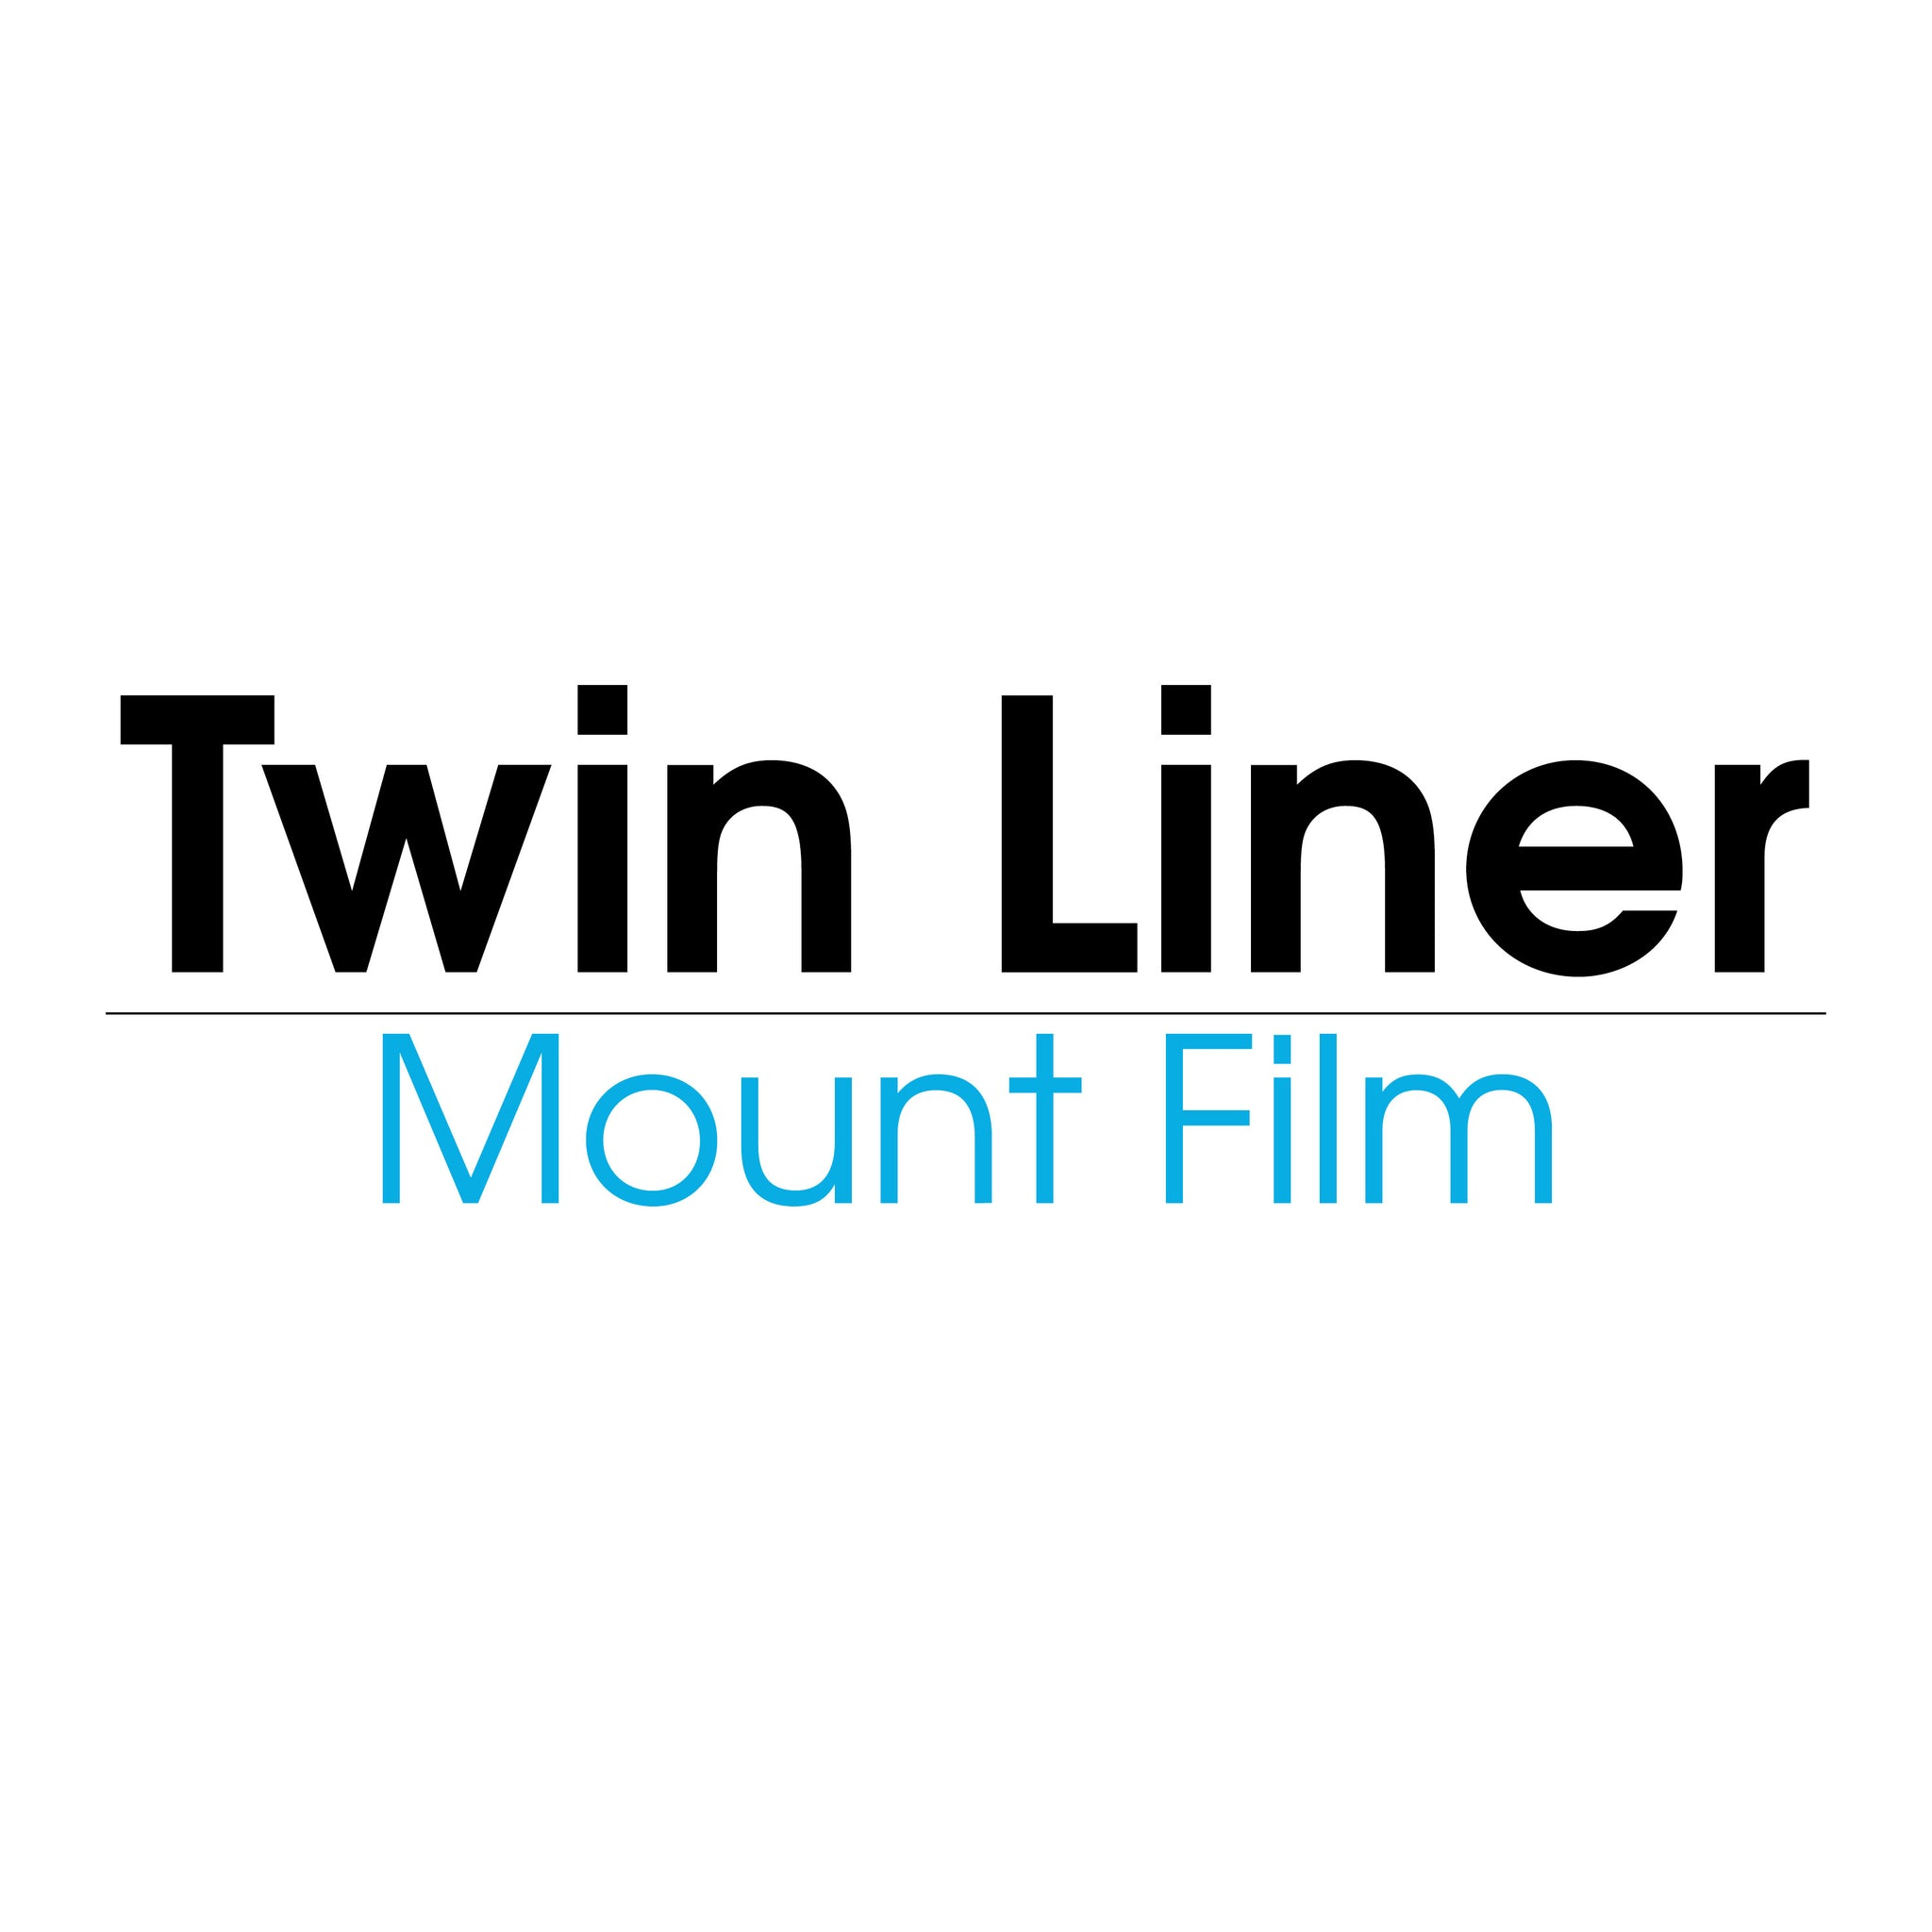 Twin [Double] Liner Mounting Film (cold) - mountingsubstrates.com